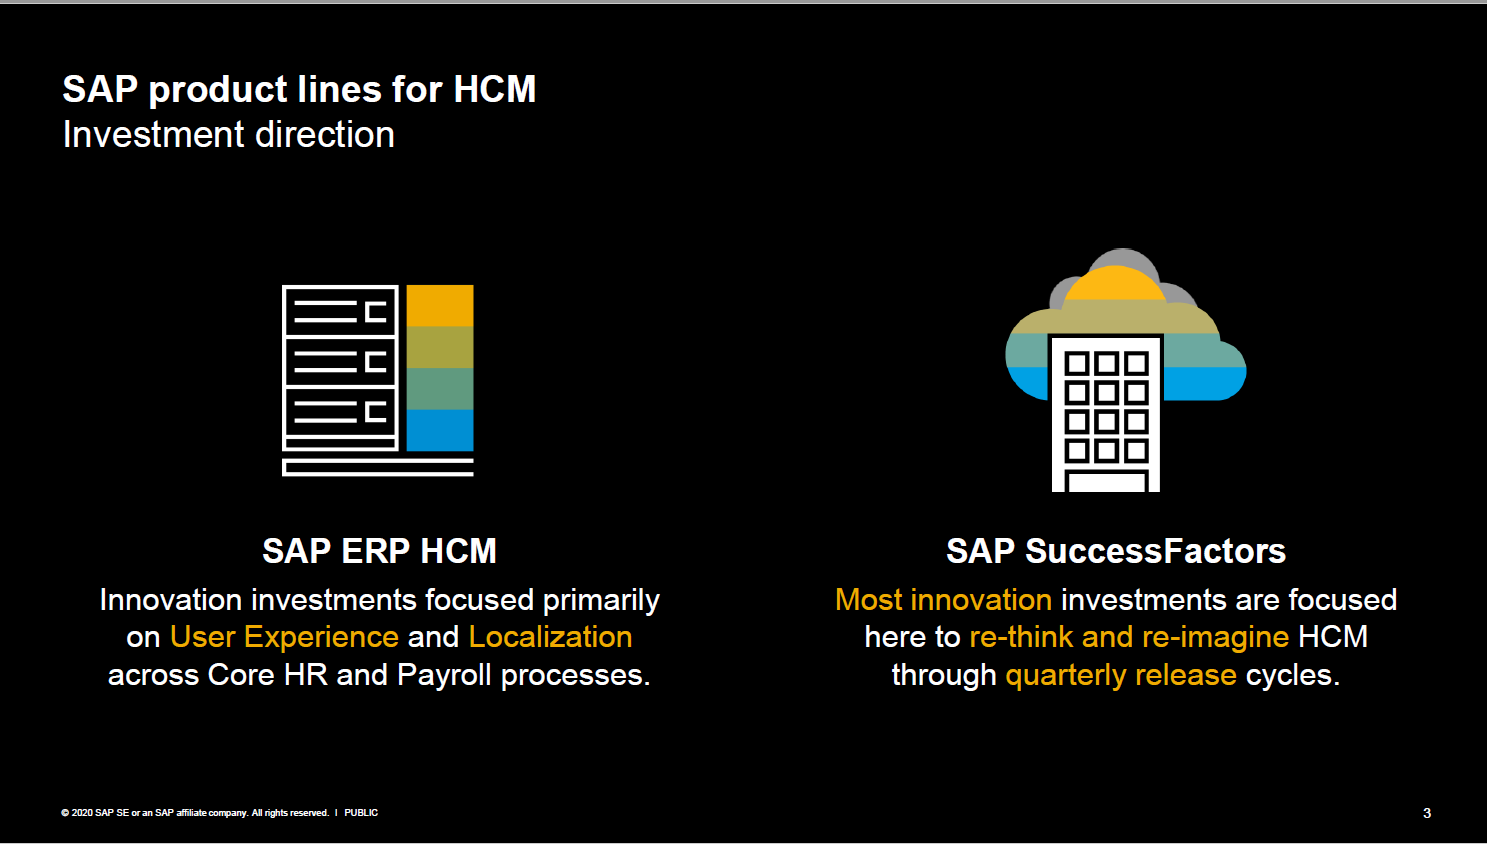 SAP Product lines for HCM